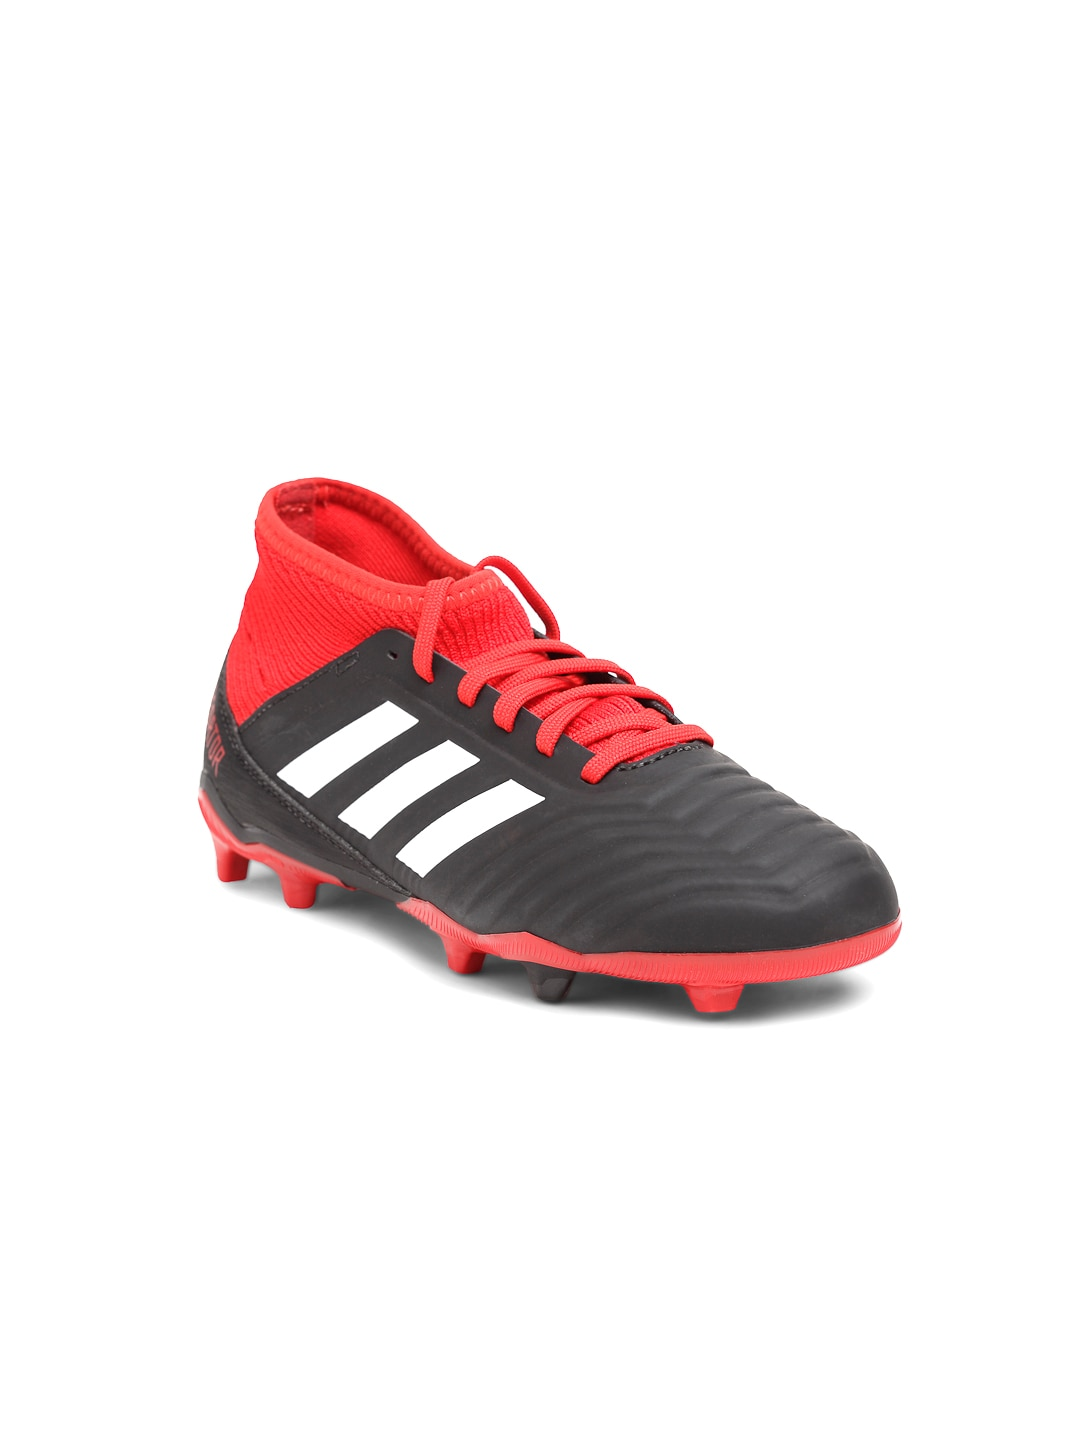 f82bb851f07 Adidas Football Shoes - Buy Adidas Football Shoes for Men Online in India